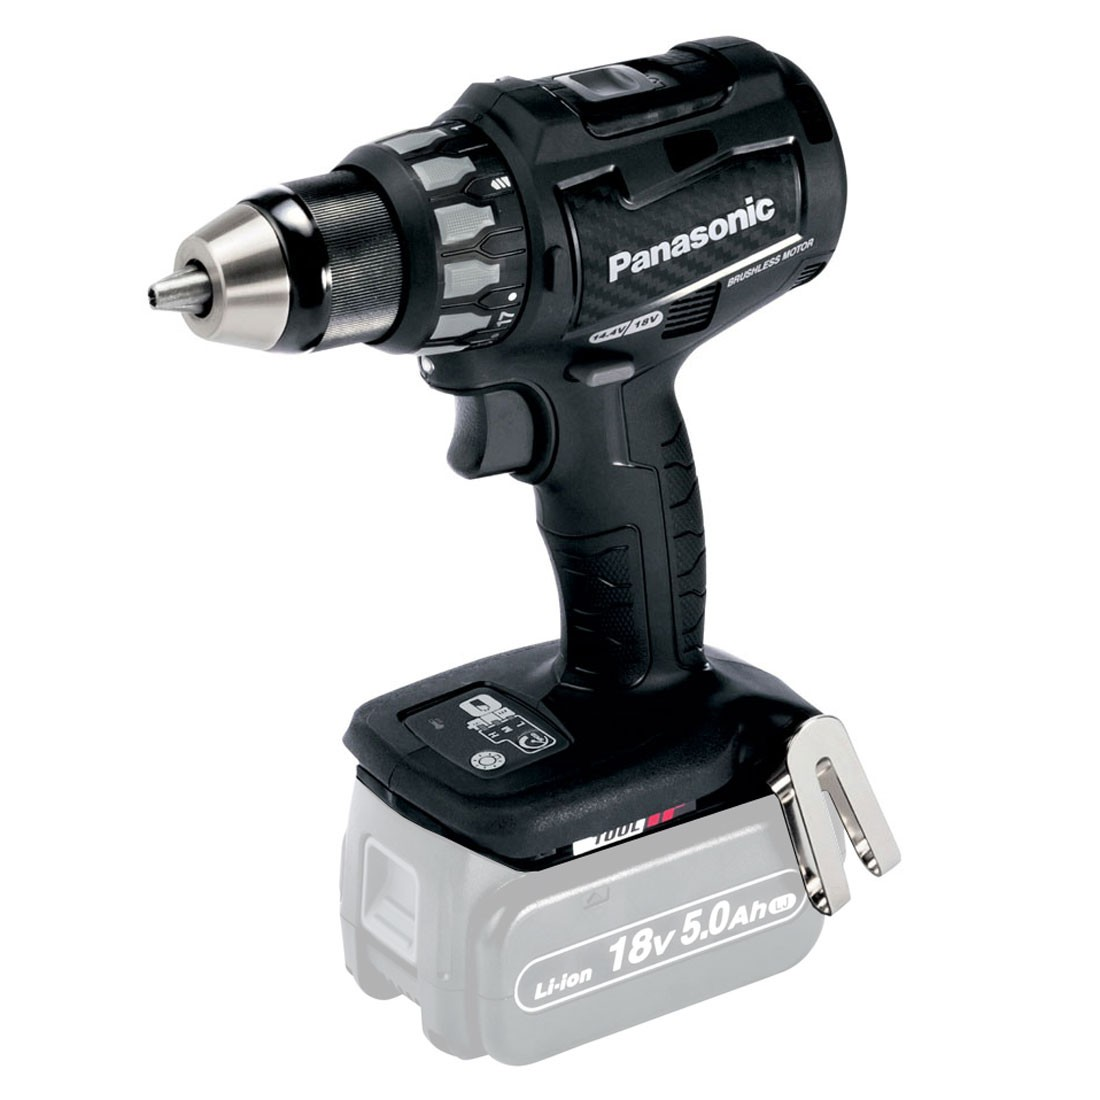 Panasonic EY74A2X32 Dual Voltage 14.4v/18v Drill Driver Body Only